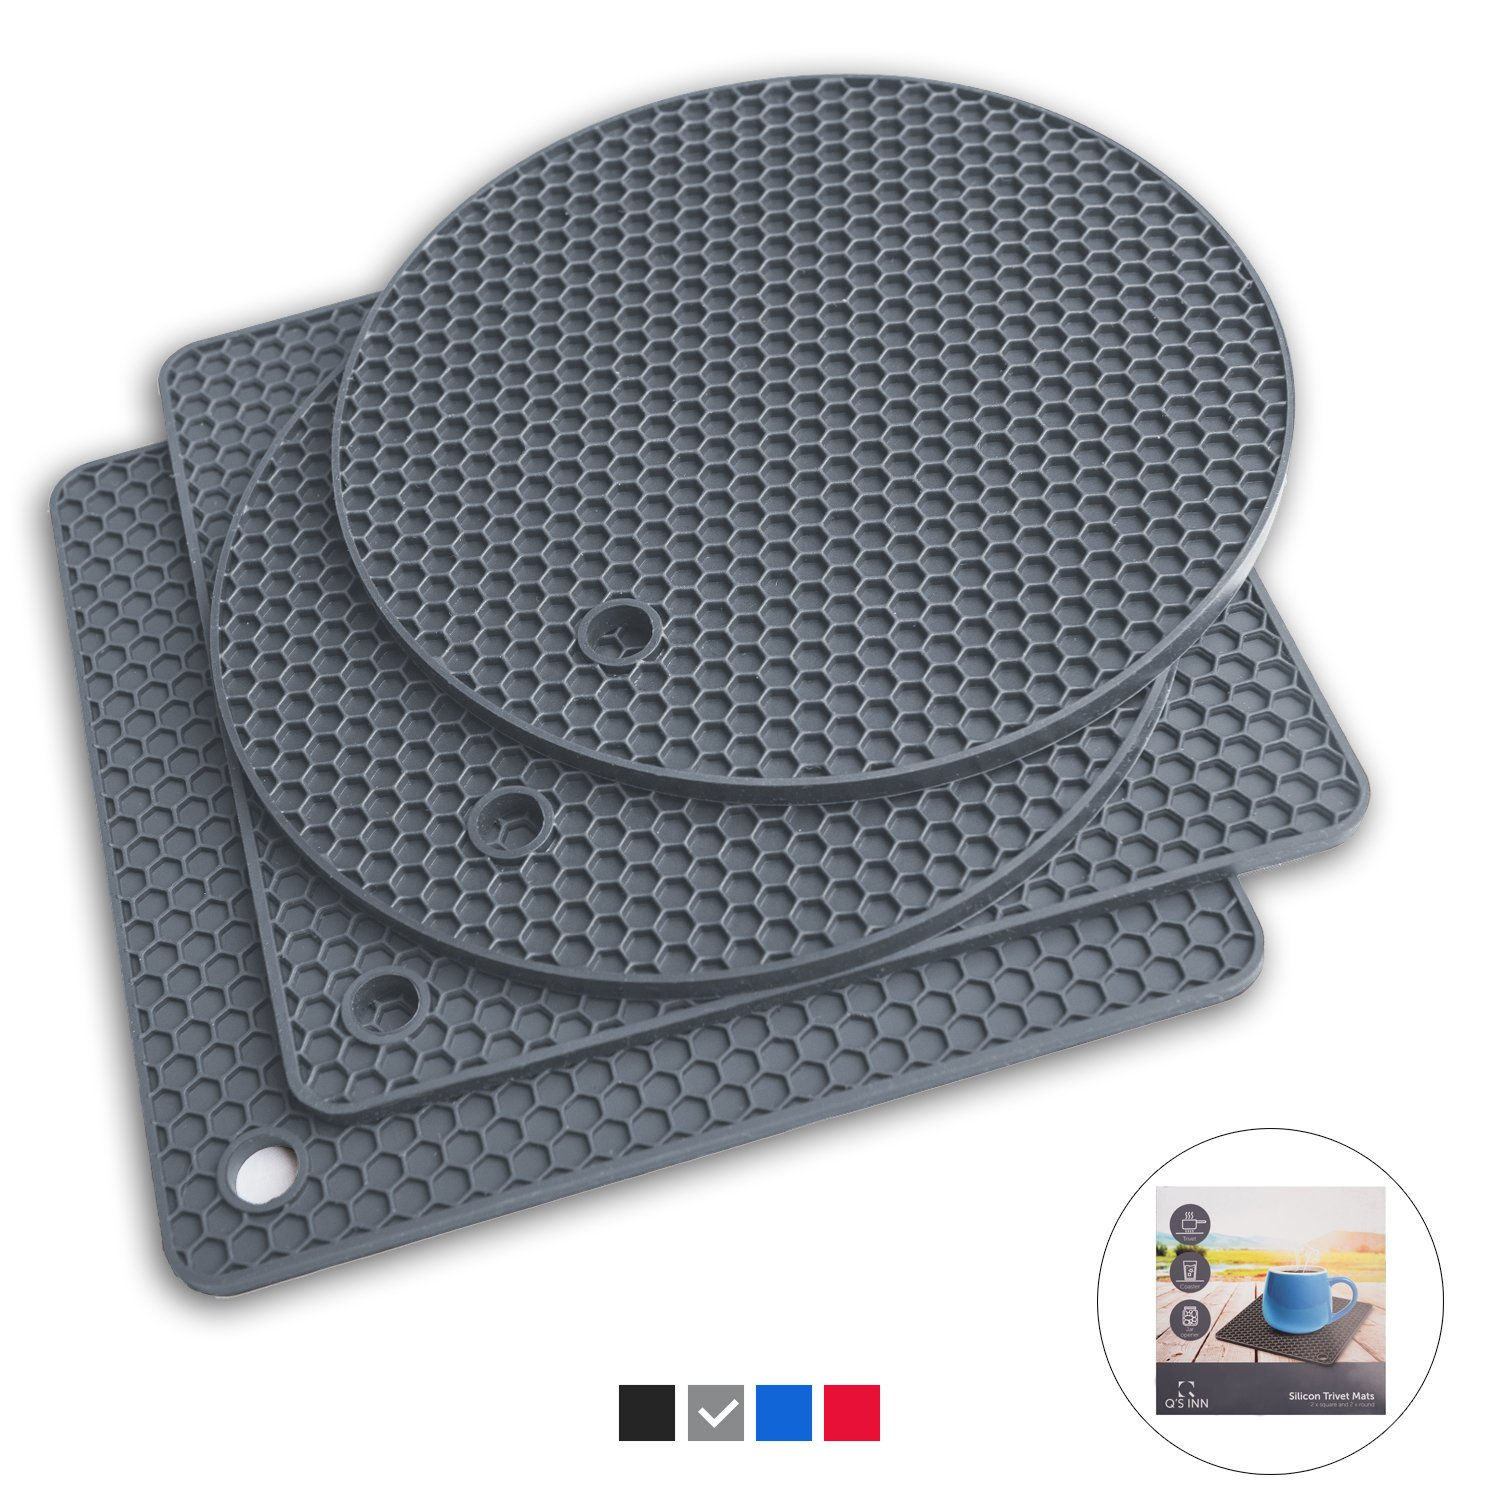 Q's INN Silicone Trivet Mats   Hot Pot Holders   Drying Mat. Our 7 in 1 Multi-Purpose Kitchen Tool is Heat Resistant to 440°F, Non-slip,durable, flexible easy to wash and dry and Contains 4 pcs